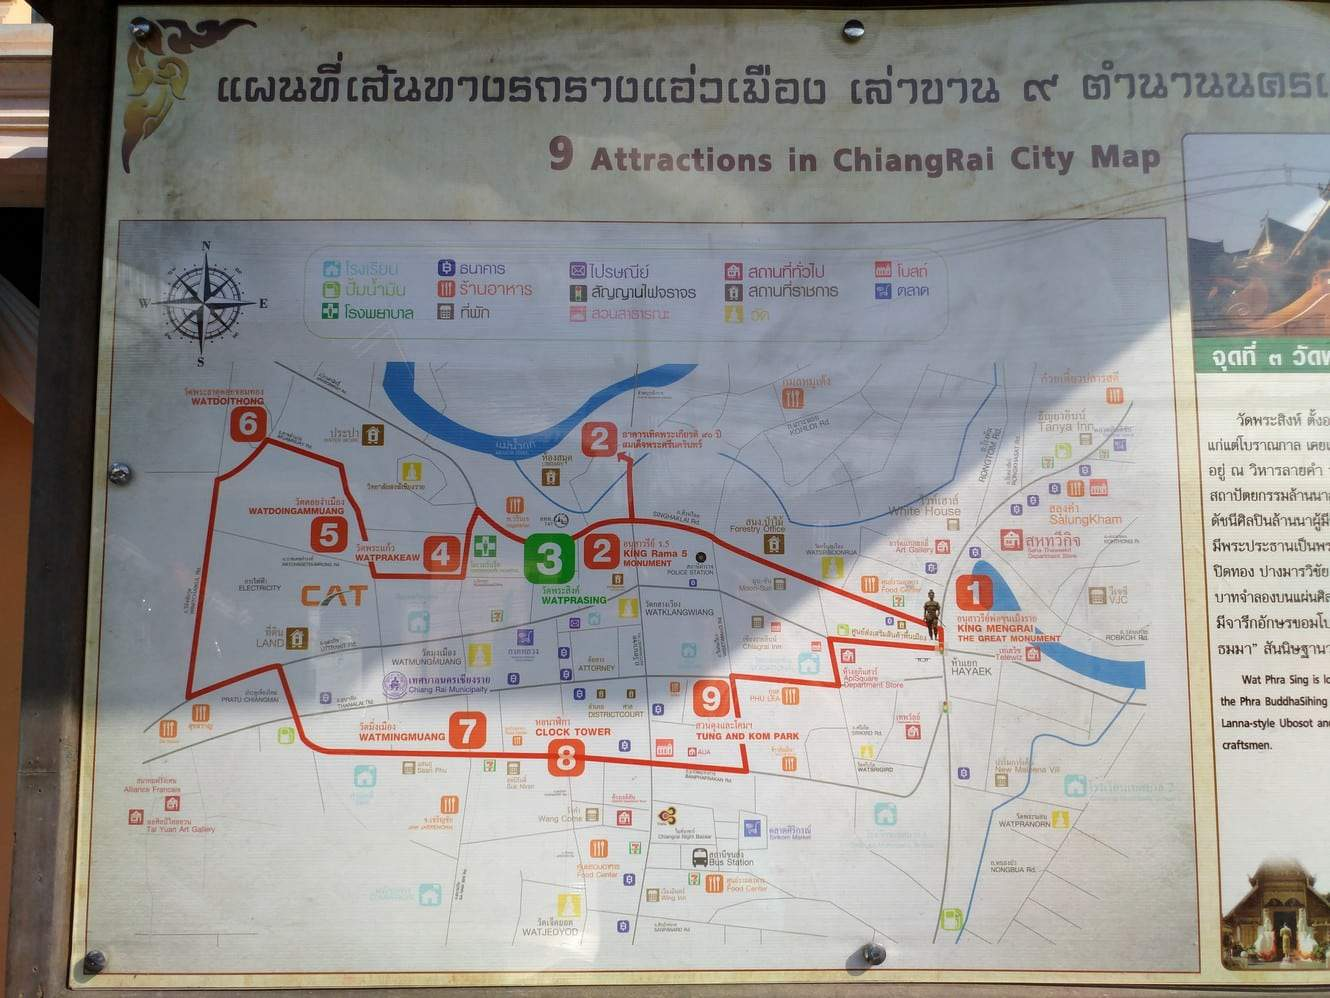 Chiang Rai city map 01